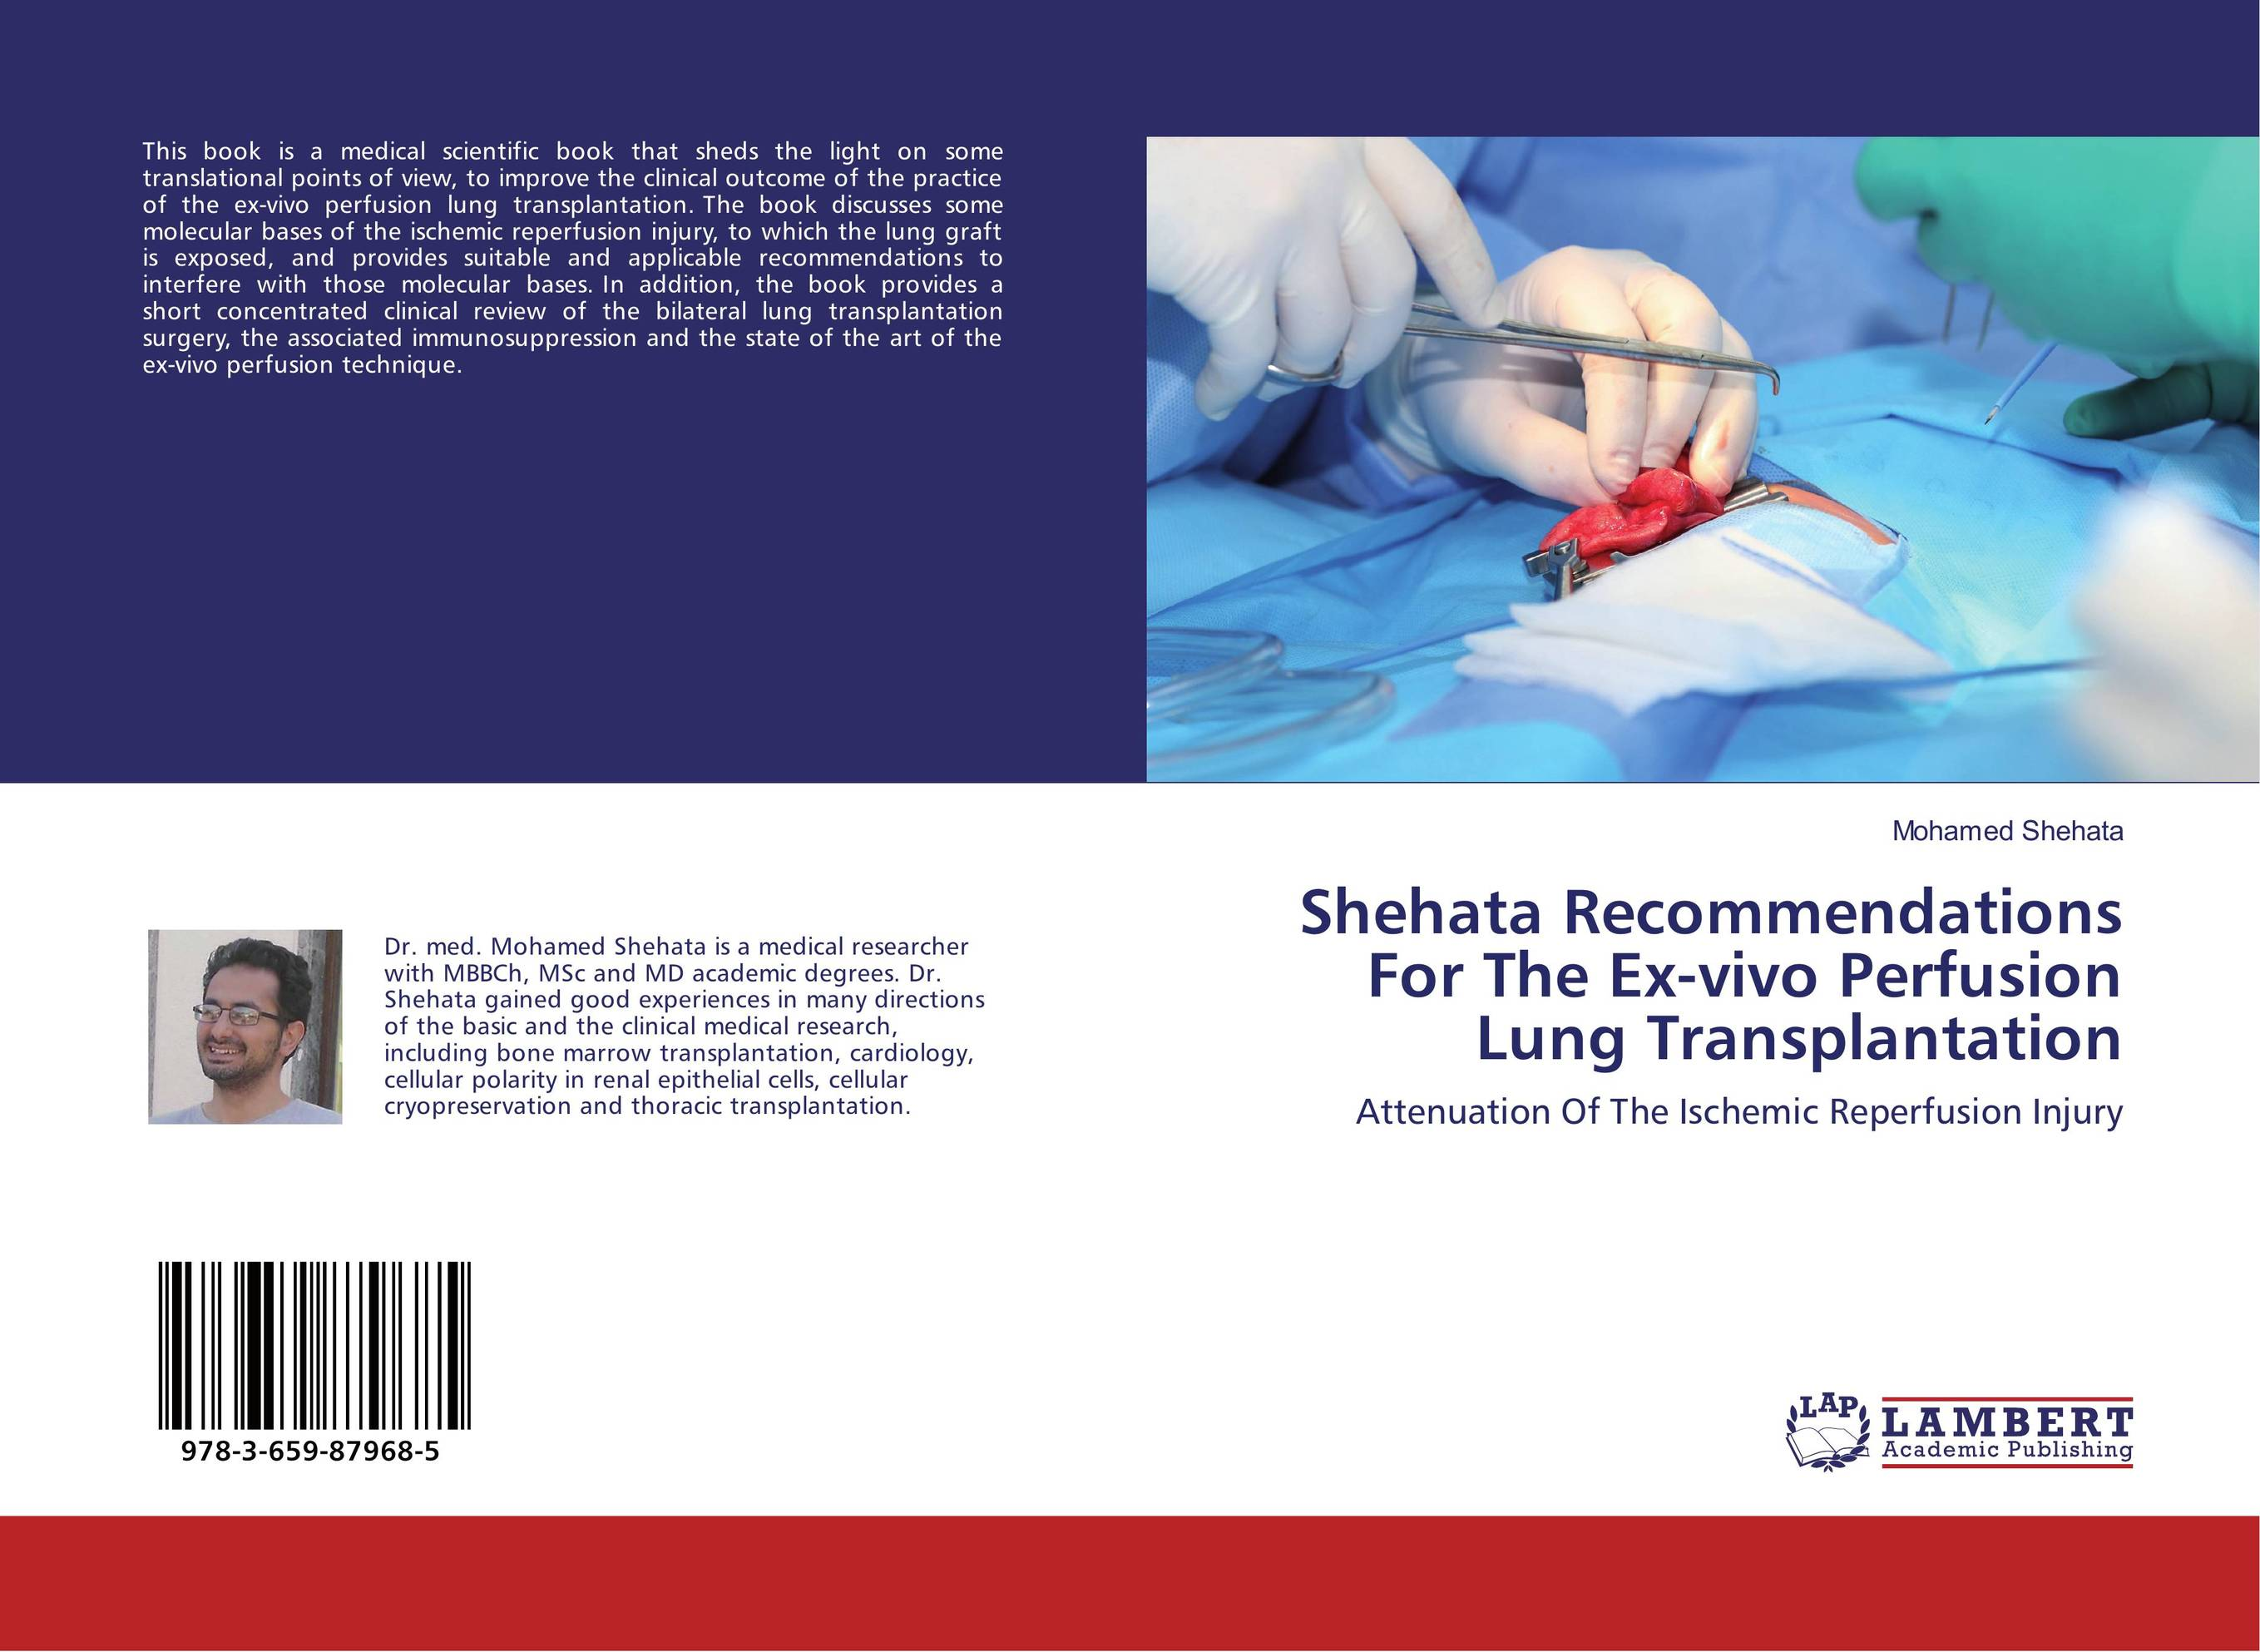 Shehata Recommendations For The Ex-vivo Perfusion Lung Transplantation transplantation